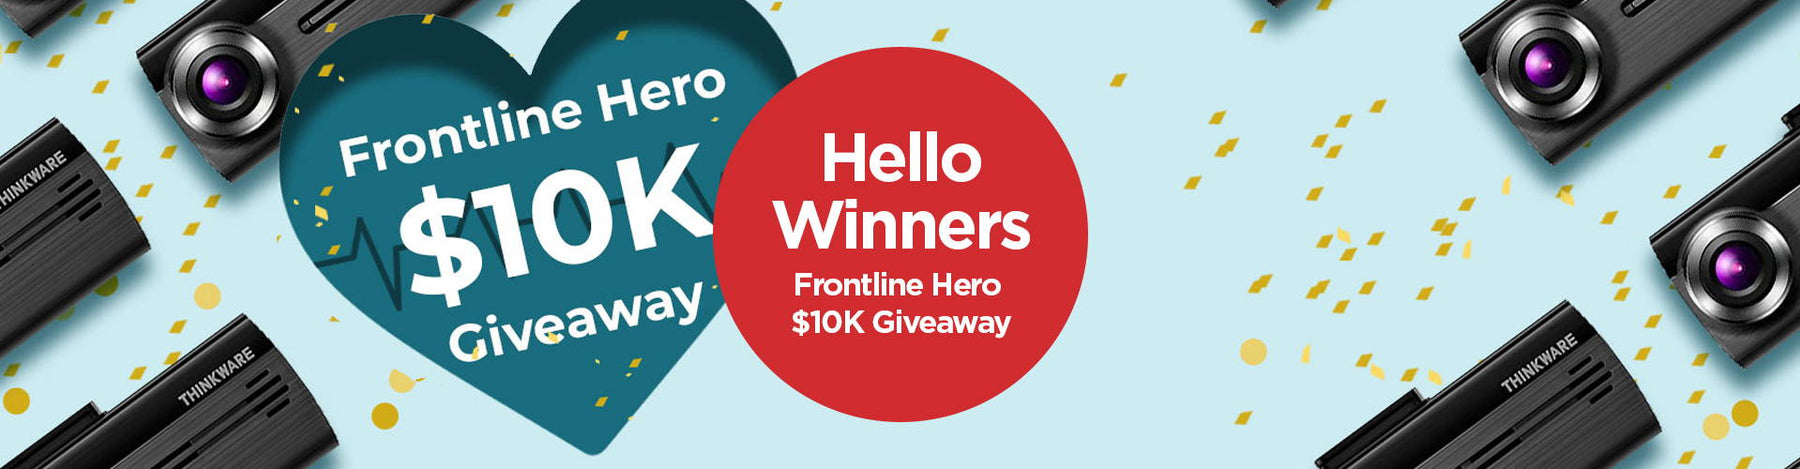 Meet the Winners of our Frontline Hero $10K Giveaway